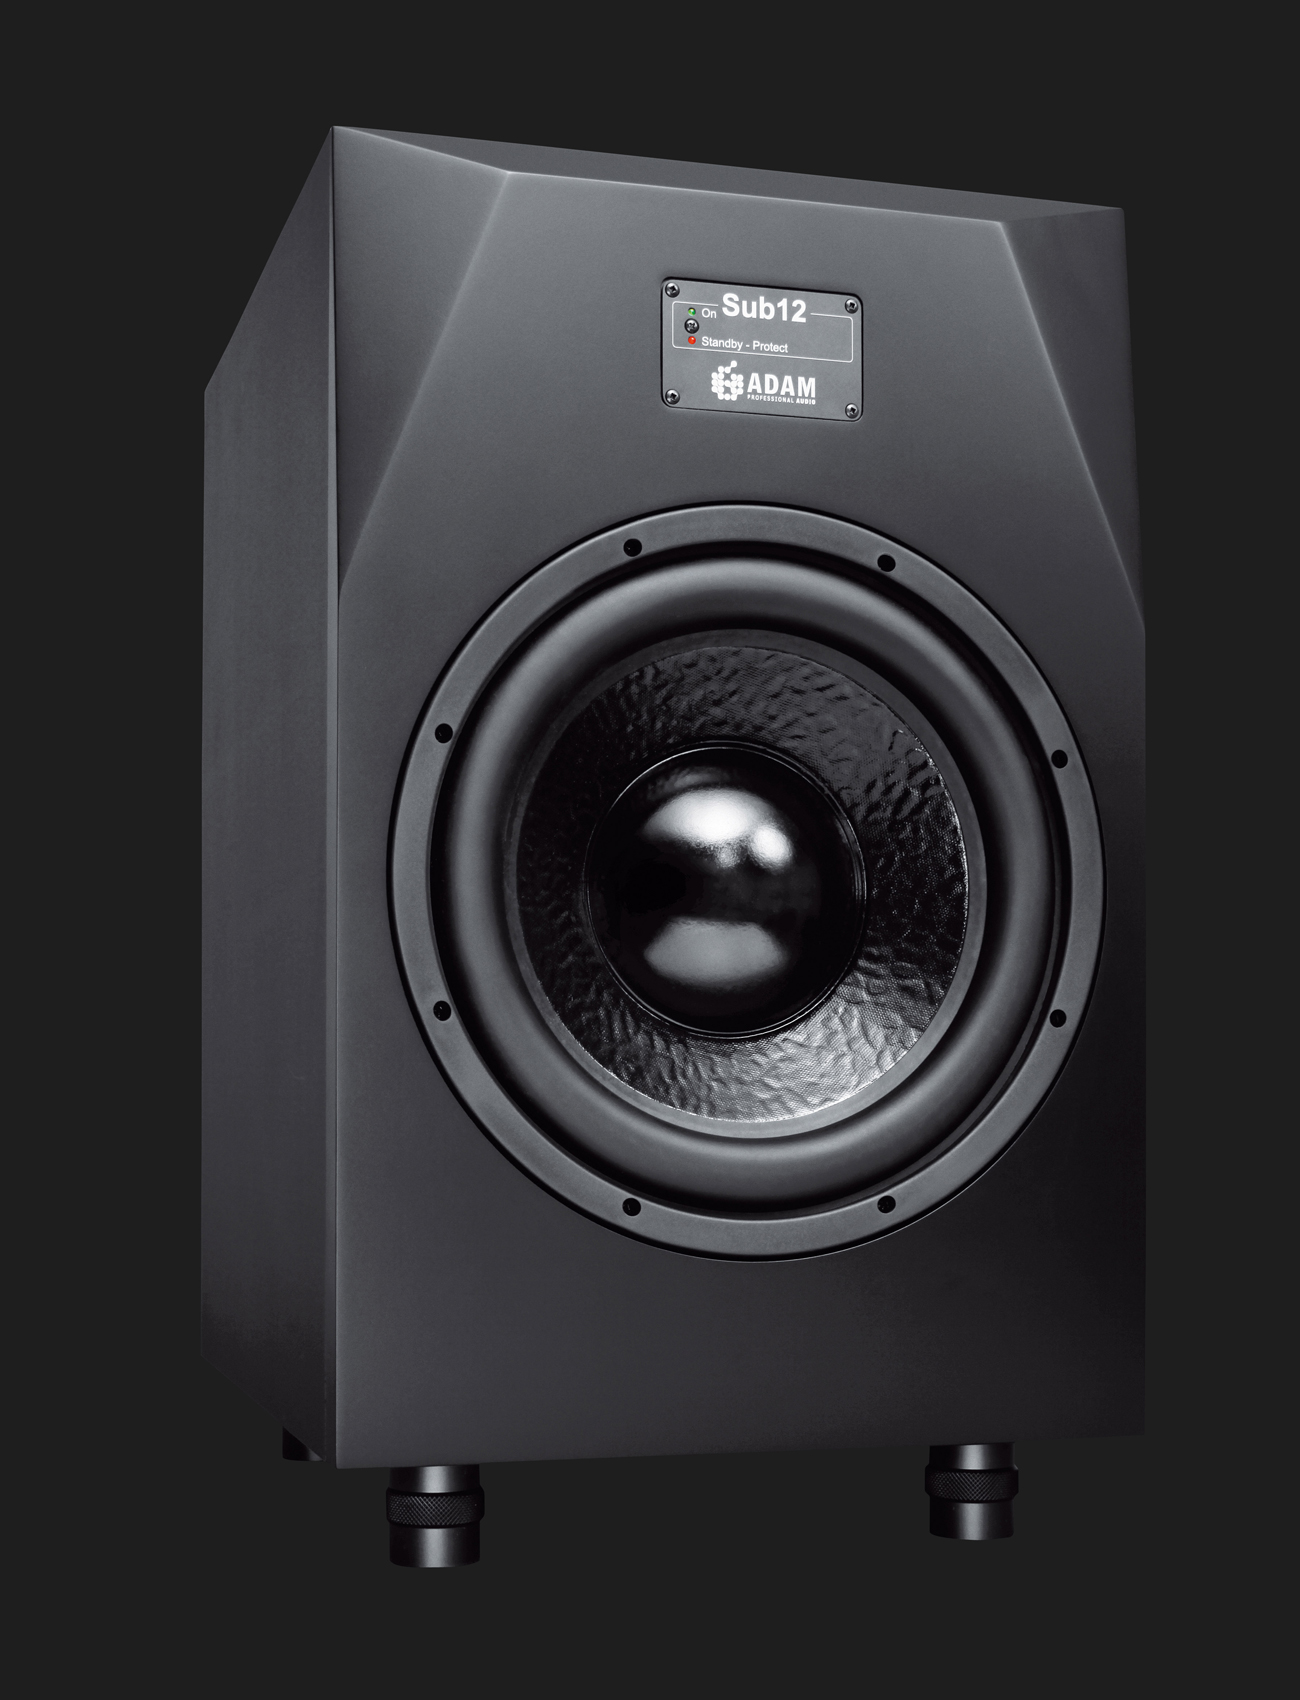 Adam Audio Sub12 Active Subwoofer For Midfield Monitor Systems Crossover Electronic Design Front